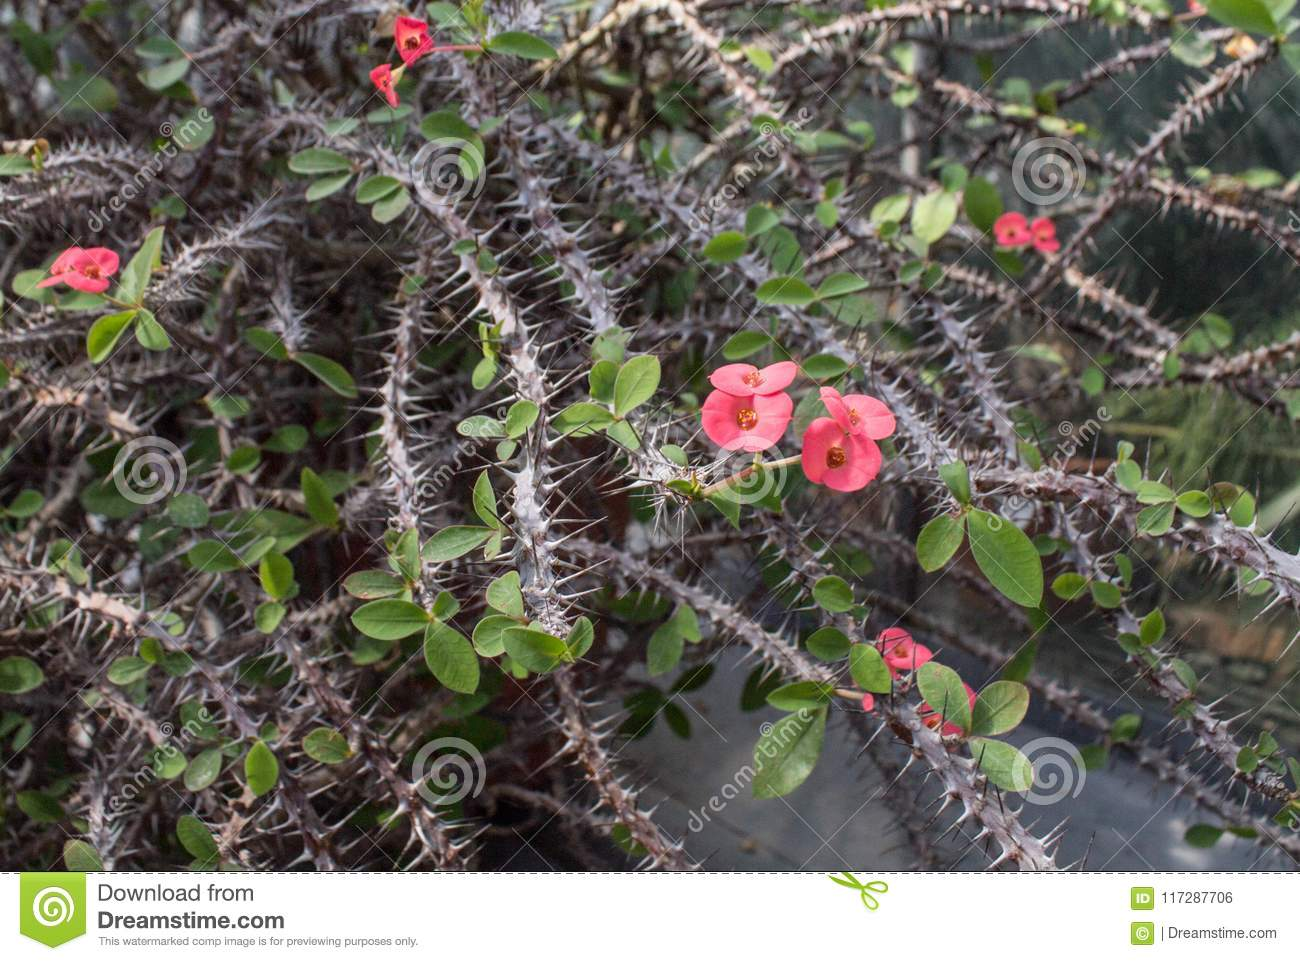 Thorny bush with pink flowers stock photo image of cactus botany download thorny bush with pink flowers stock photo image of cactus botany 117287706 mightylinksfo